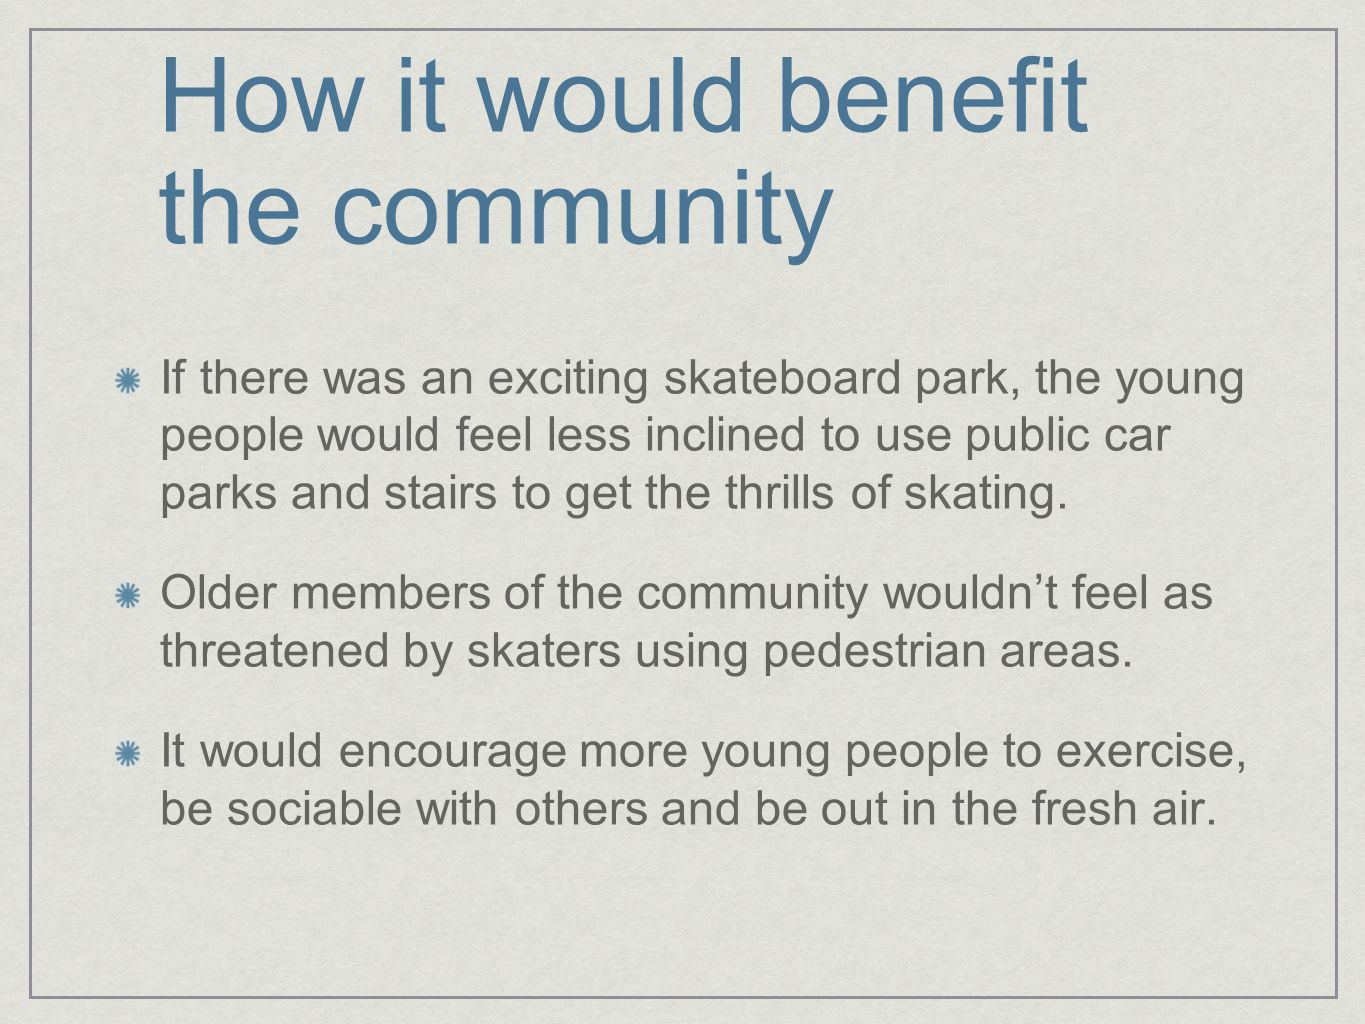 How it would benefit the community If there was an exciting skateboard park, the young people would feel less inclined to use public car parks and stairs to get the thrills of skating.